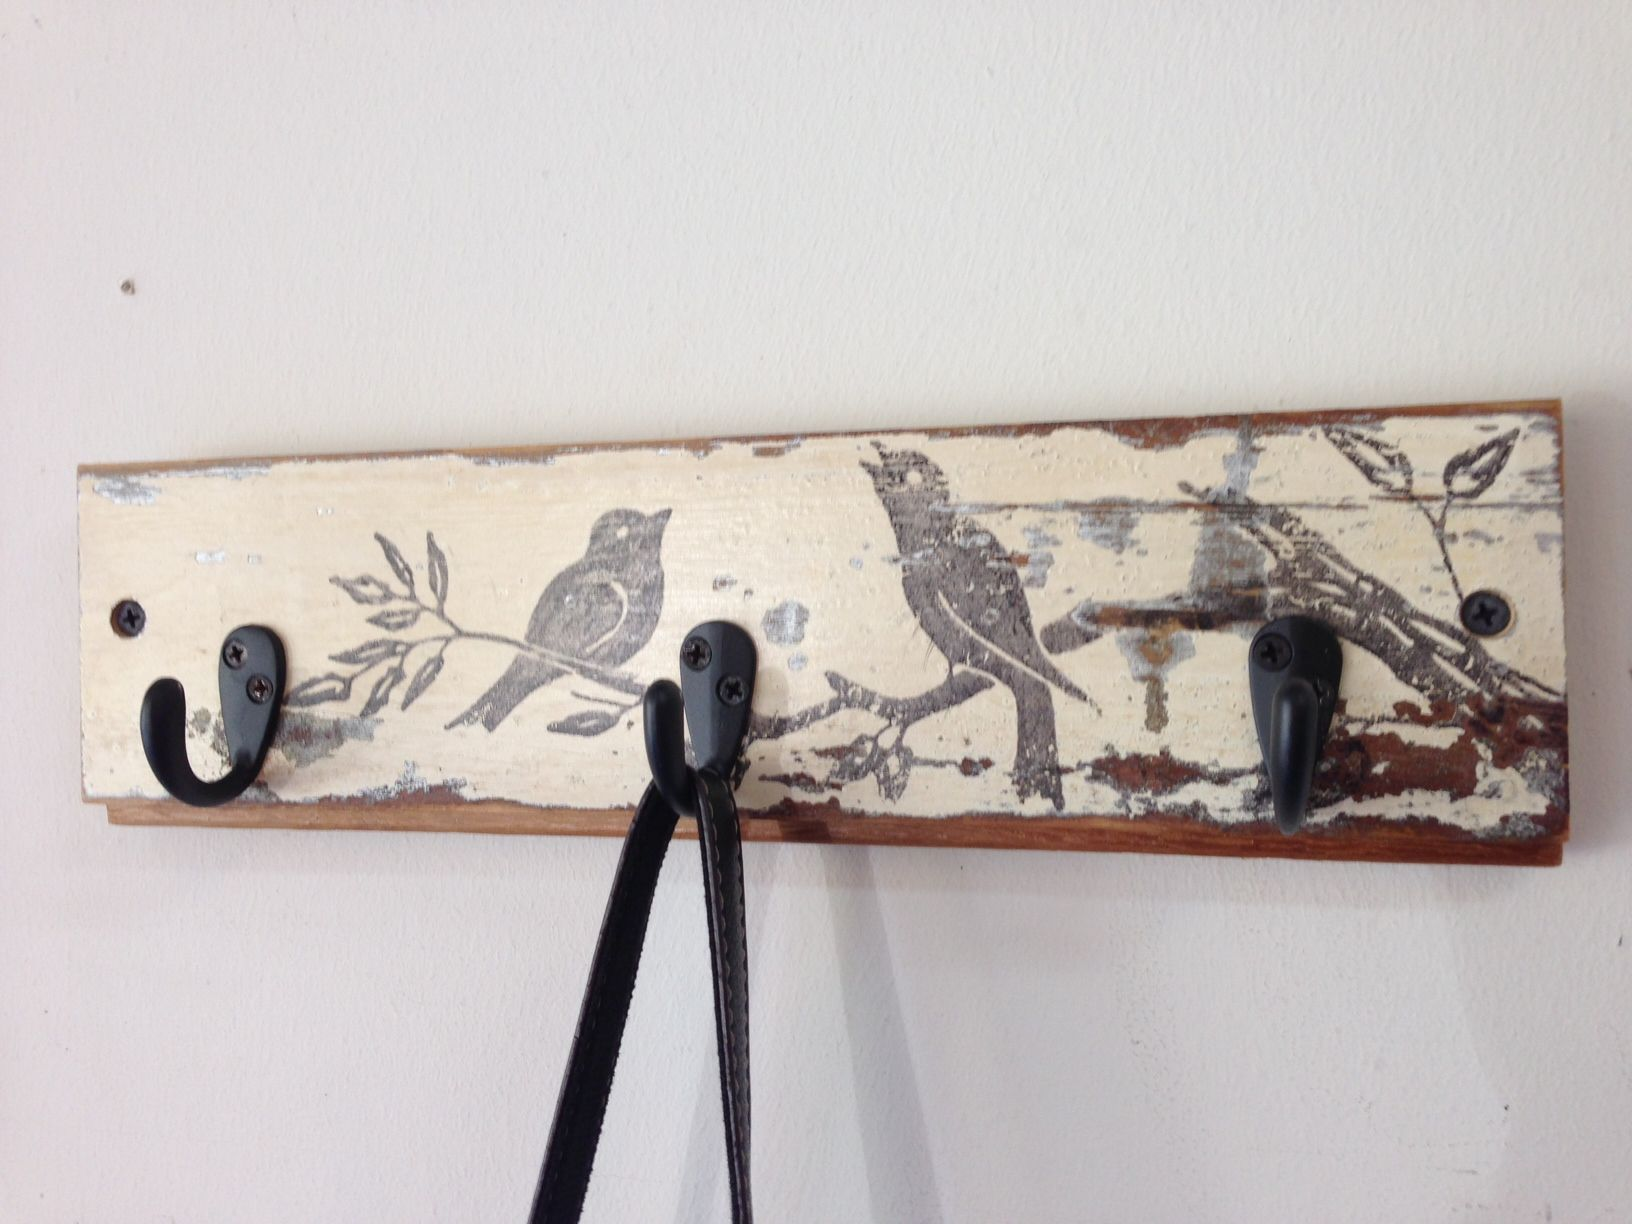 Reclaimed Wood Coat Or Key Hook Rack With Vintage Bird